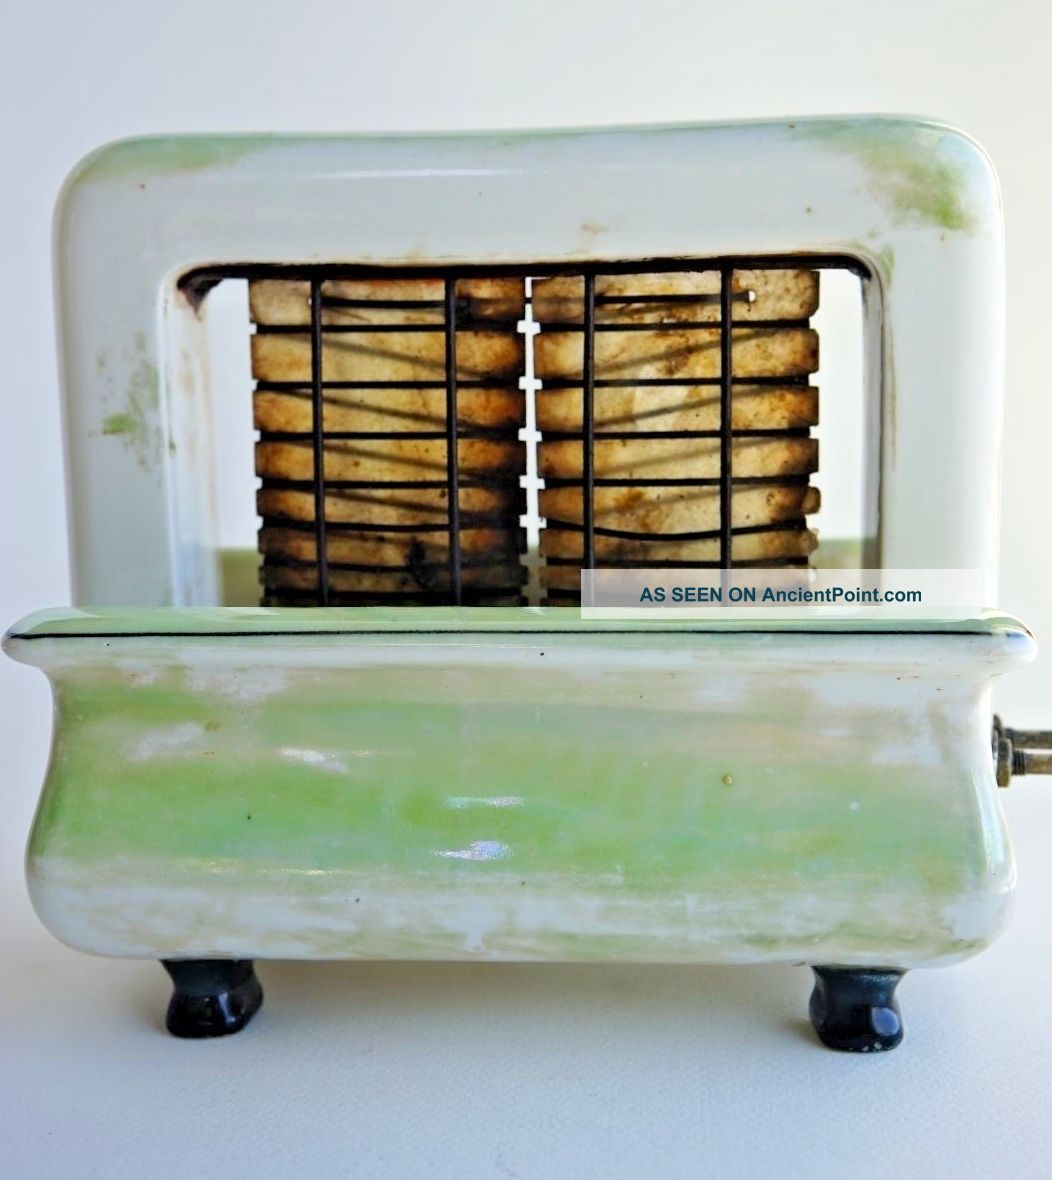 Art Deco Onyxide Toastrite Porcelain Electric Toaster Rare Collectible Toasters photo